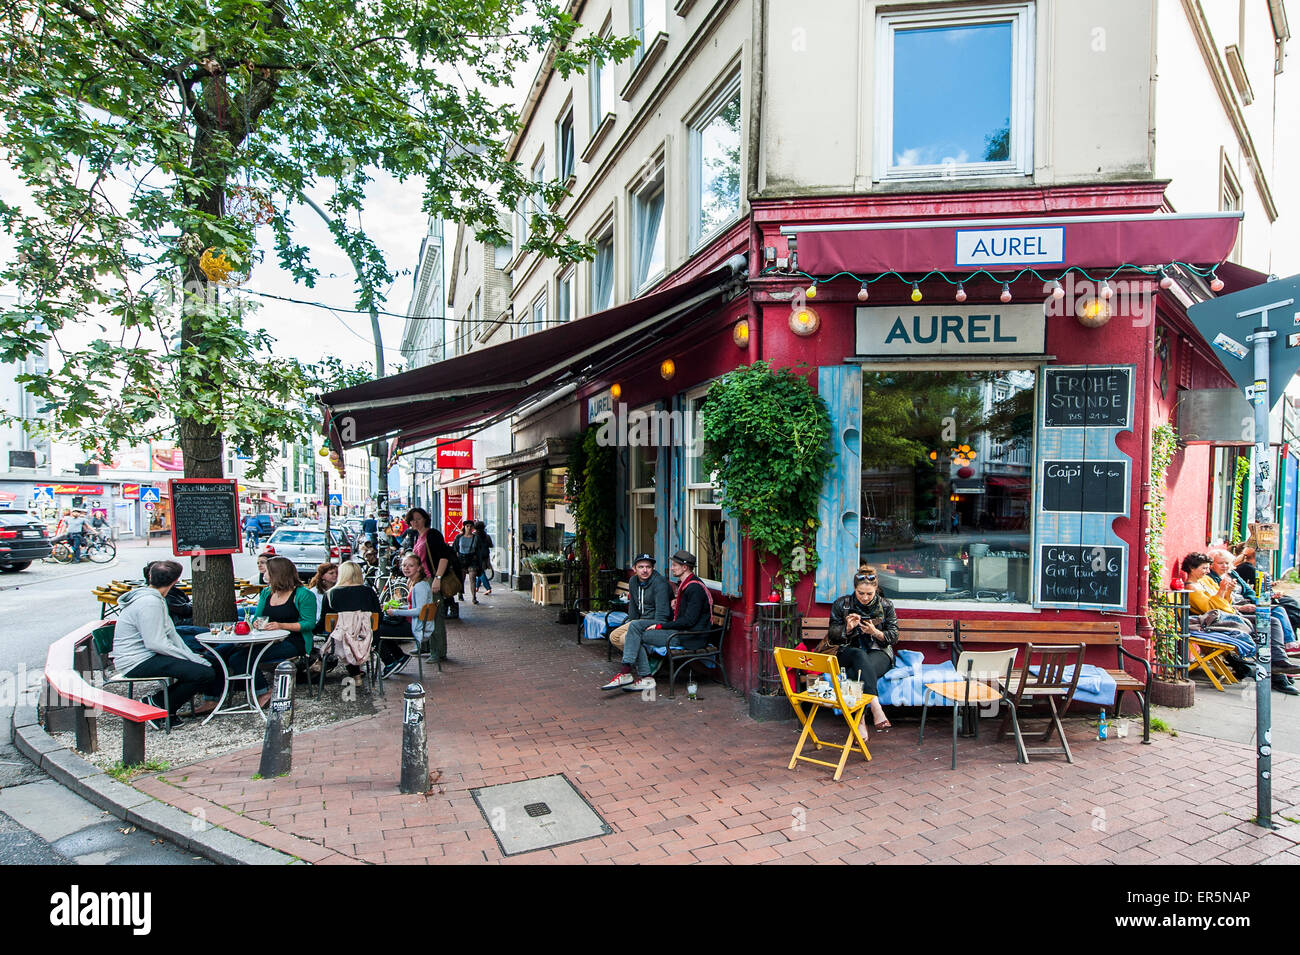 people in front of bar aurel altona hamburg germany stock photo 83105086 alamy. Black Bedroom Furniture Sets. Home Design Ideas